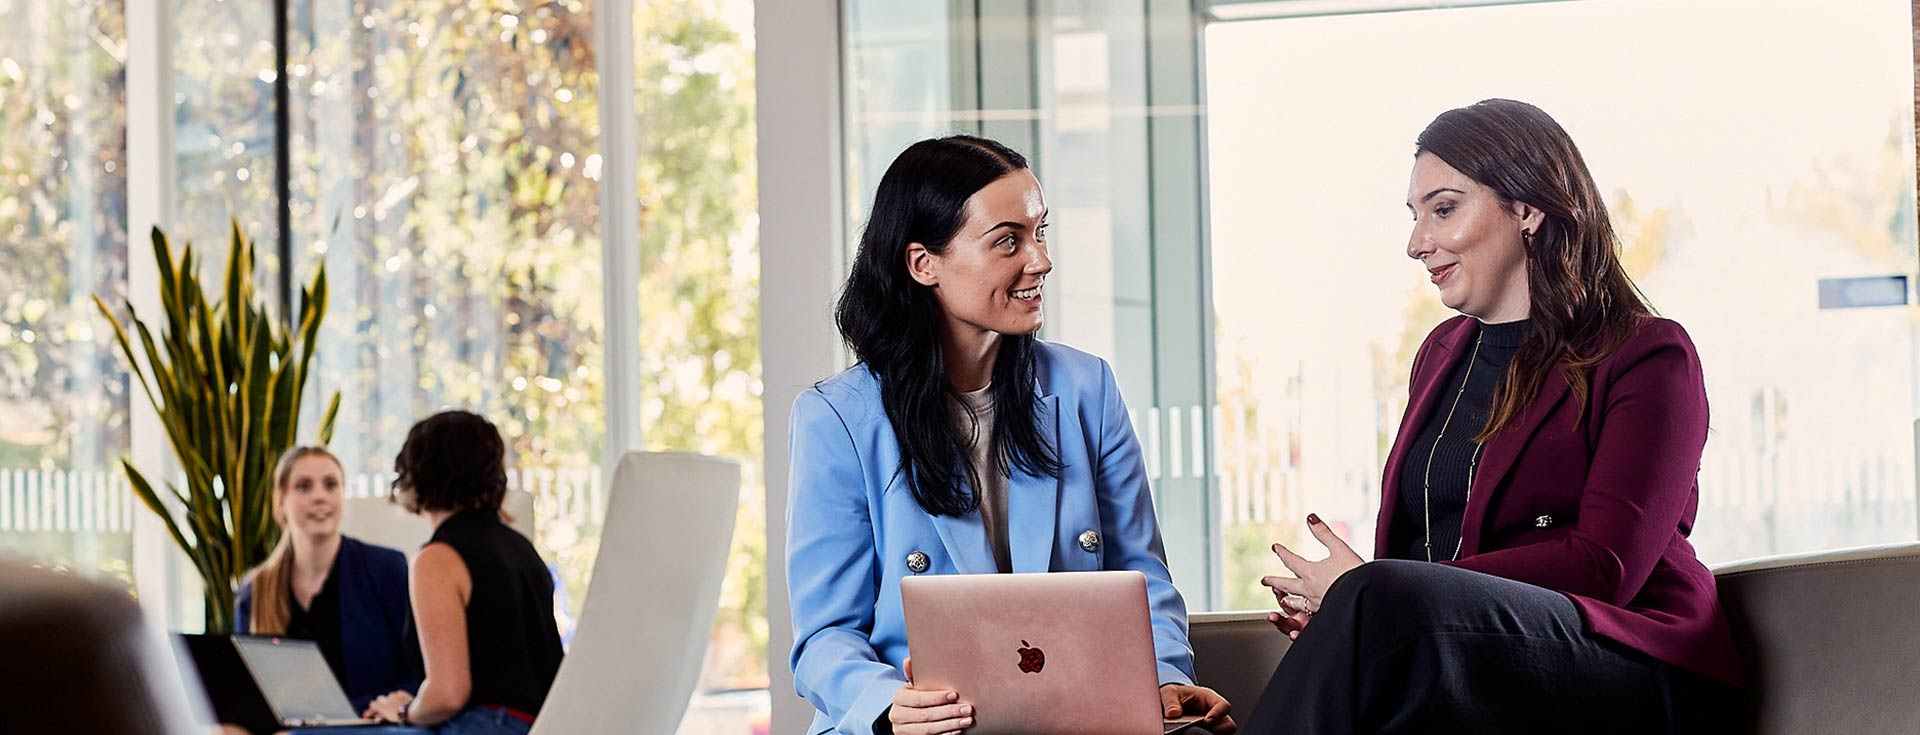 Two business women talking over a laptop